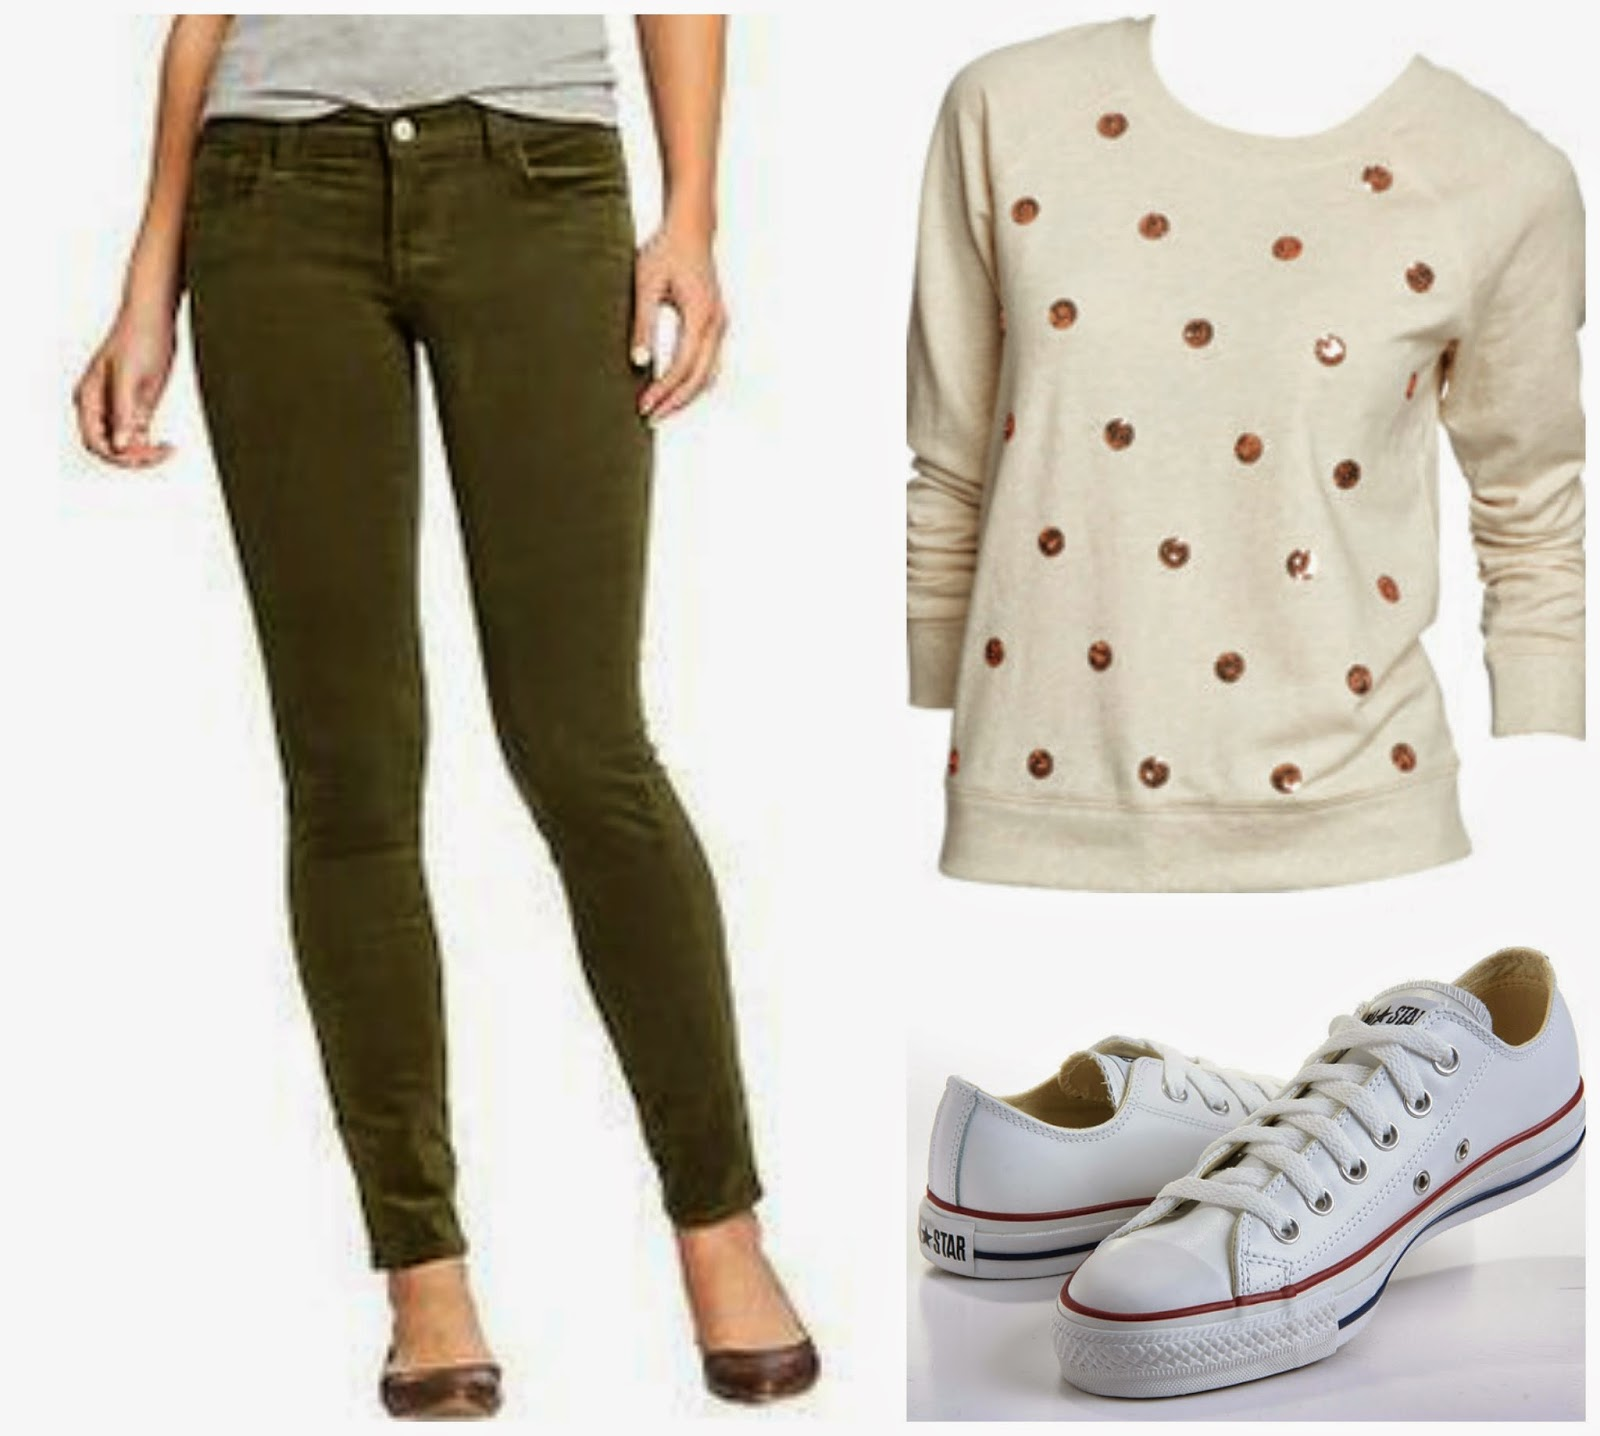 olive corduroy pants, sequined polka dot sweatshirt, converse